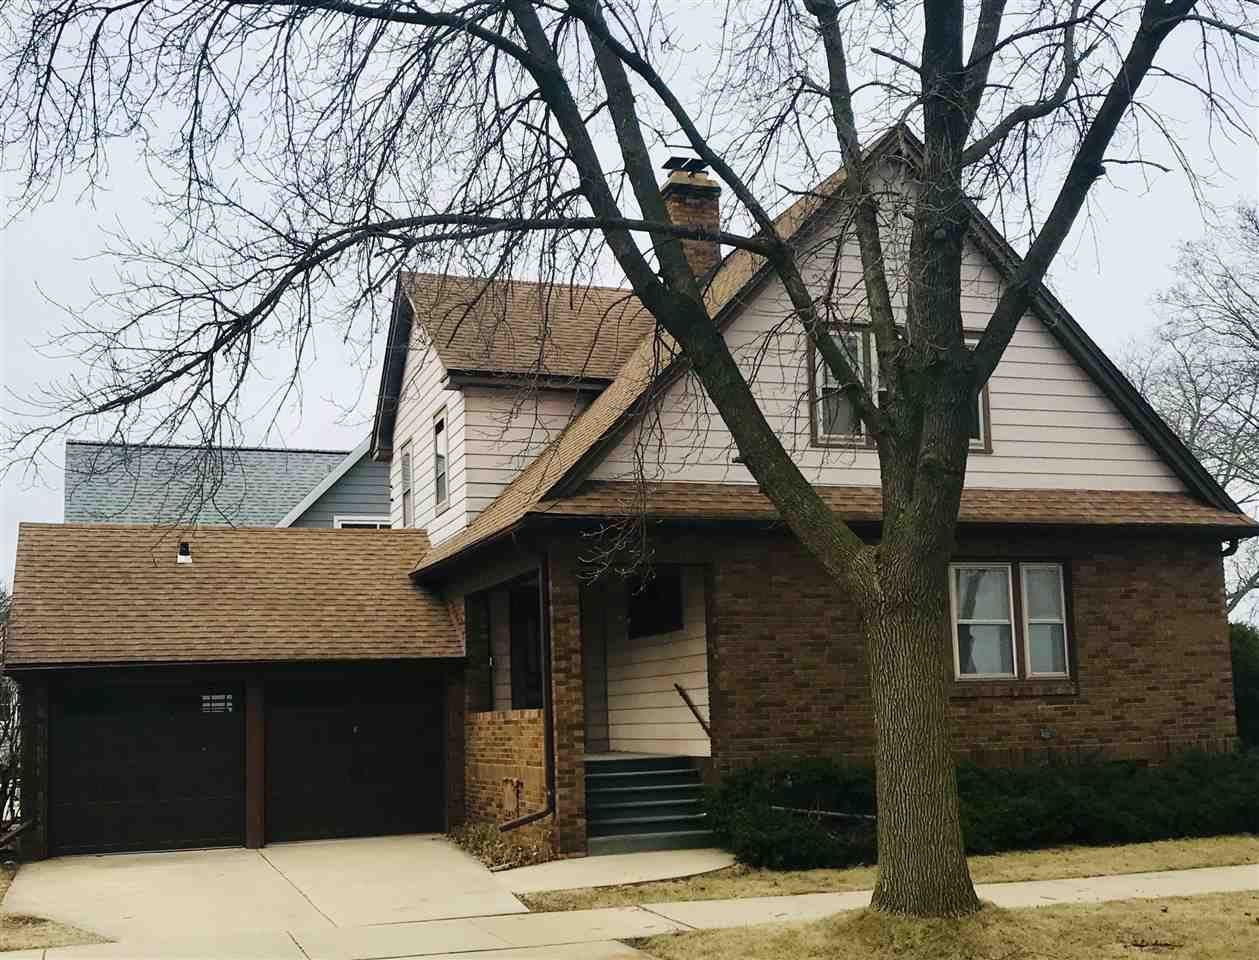 803 South Shore Dr, Madison, WI 53715 - #: 1879346